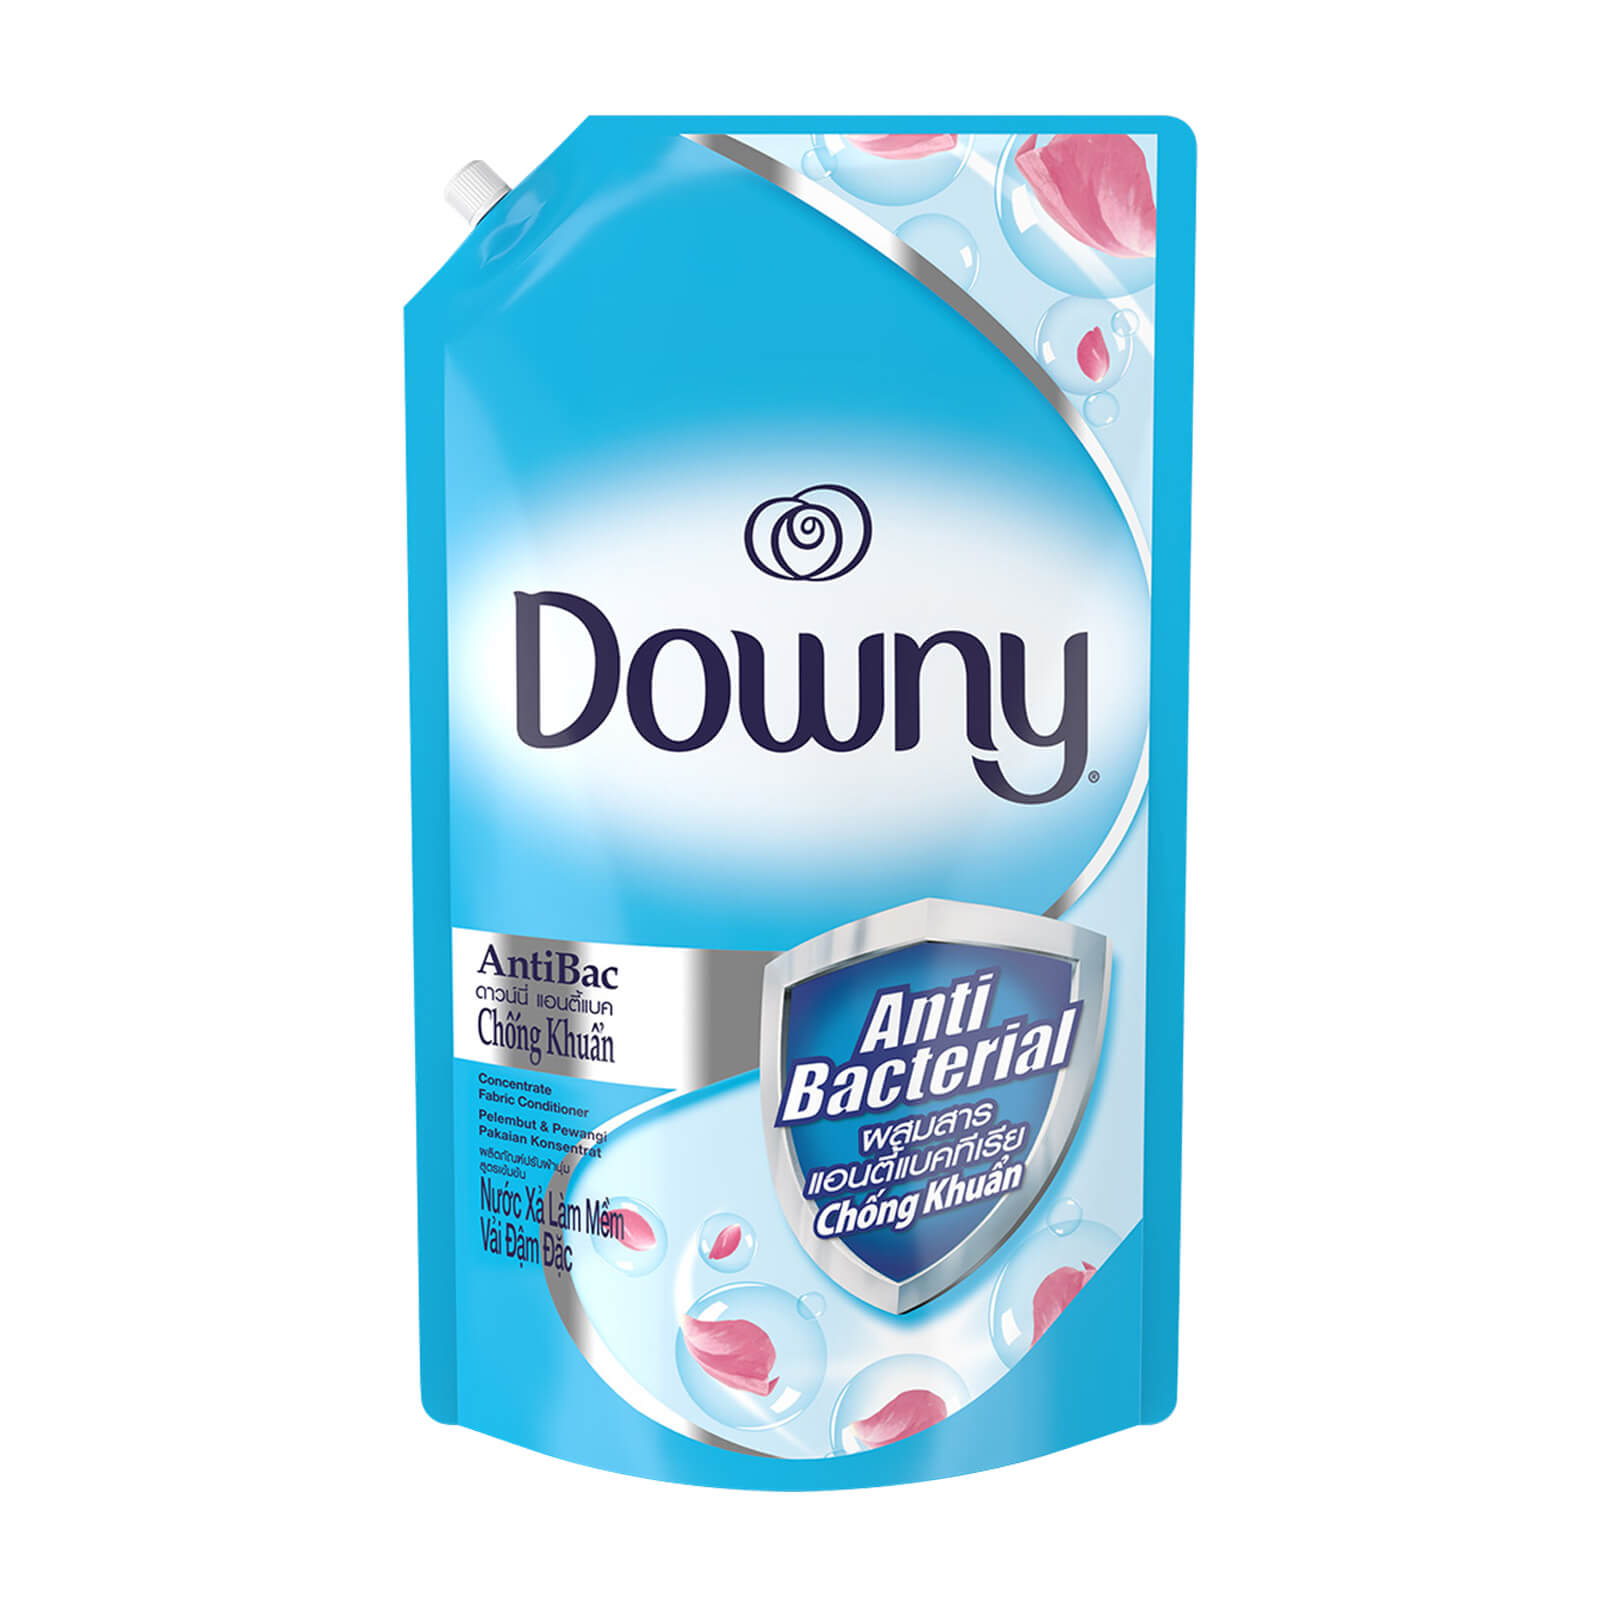 Downy Anti Bacterial Fabric Conditioner Refill (1.5L)